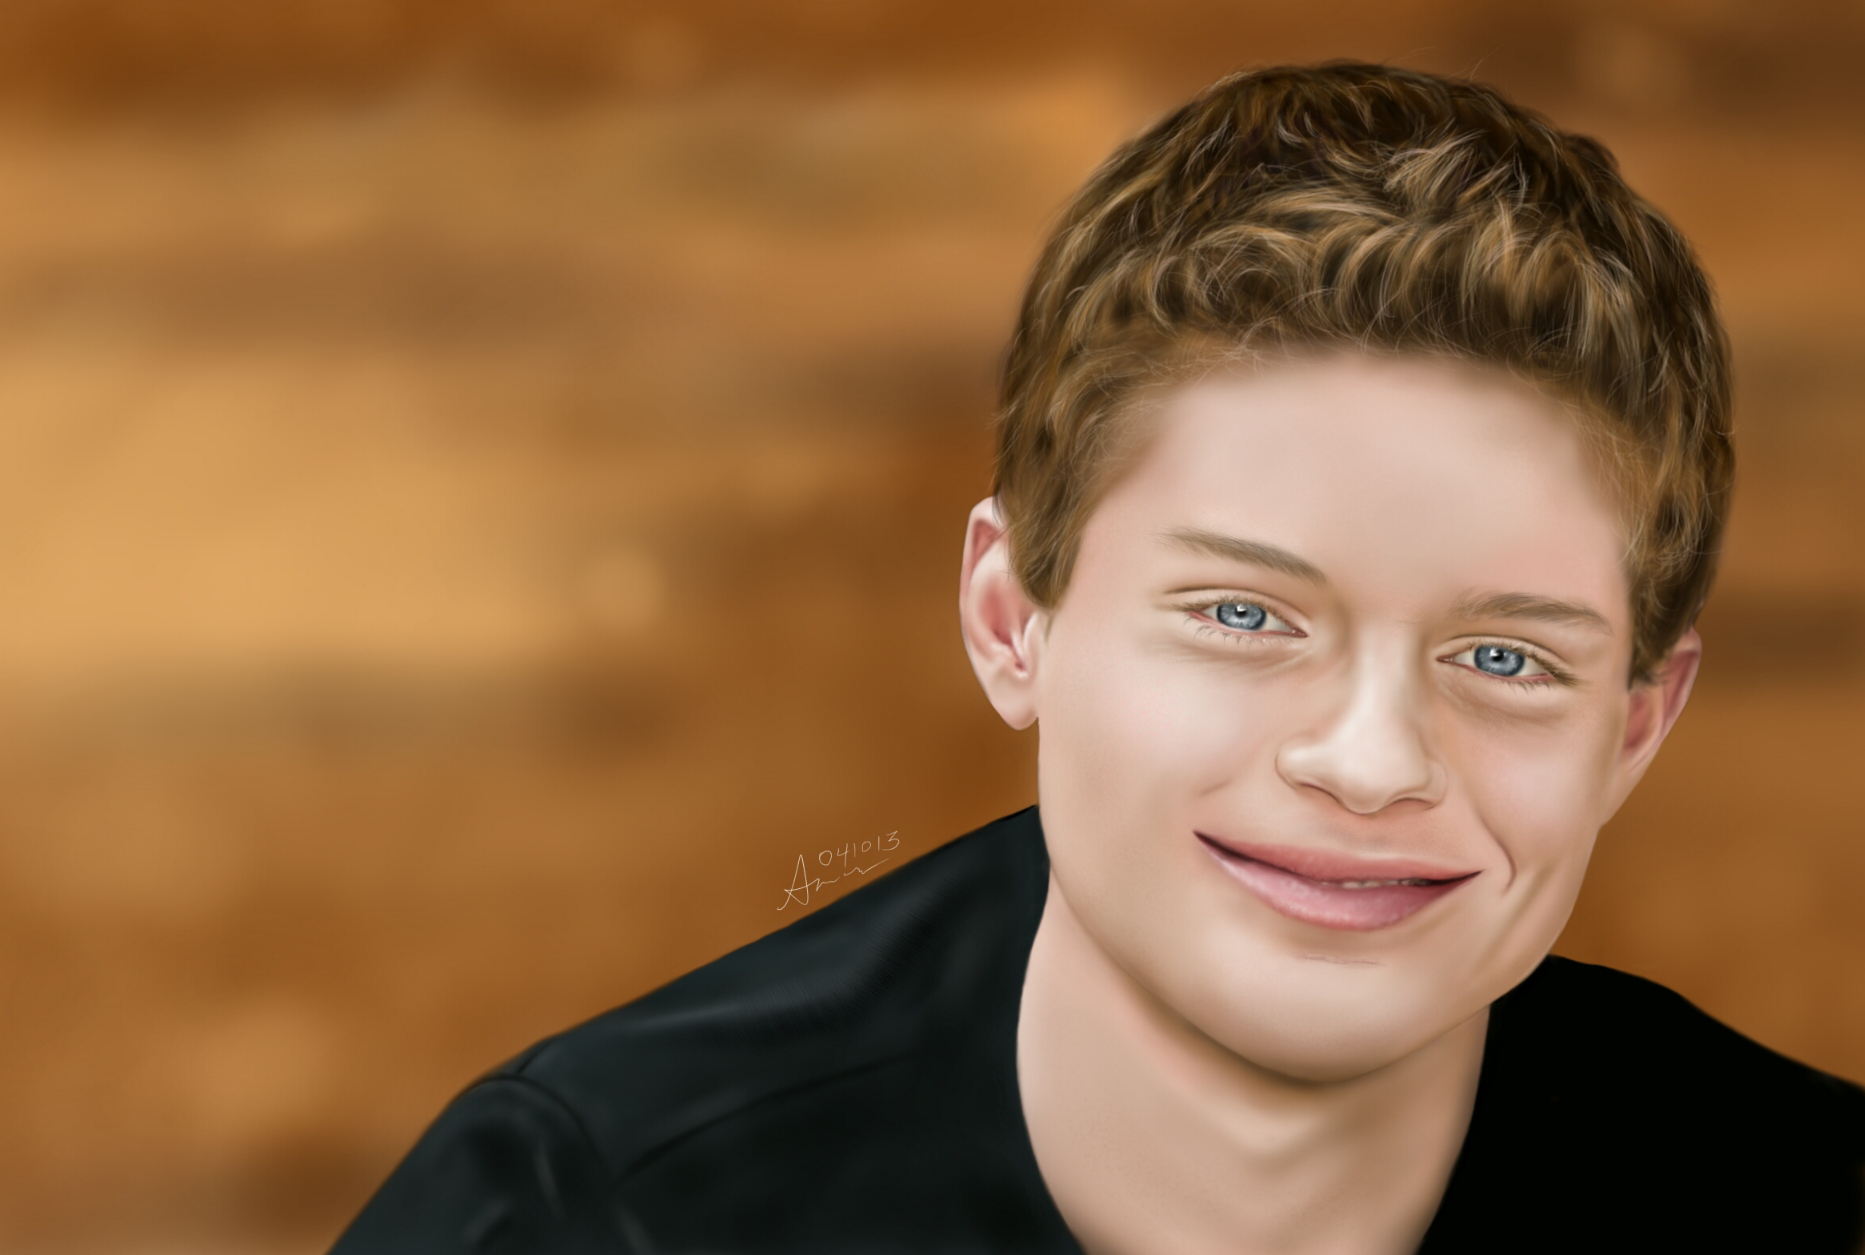 sean berdy biography